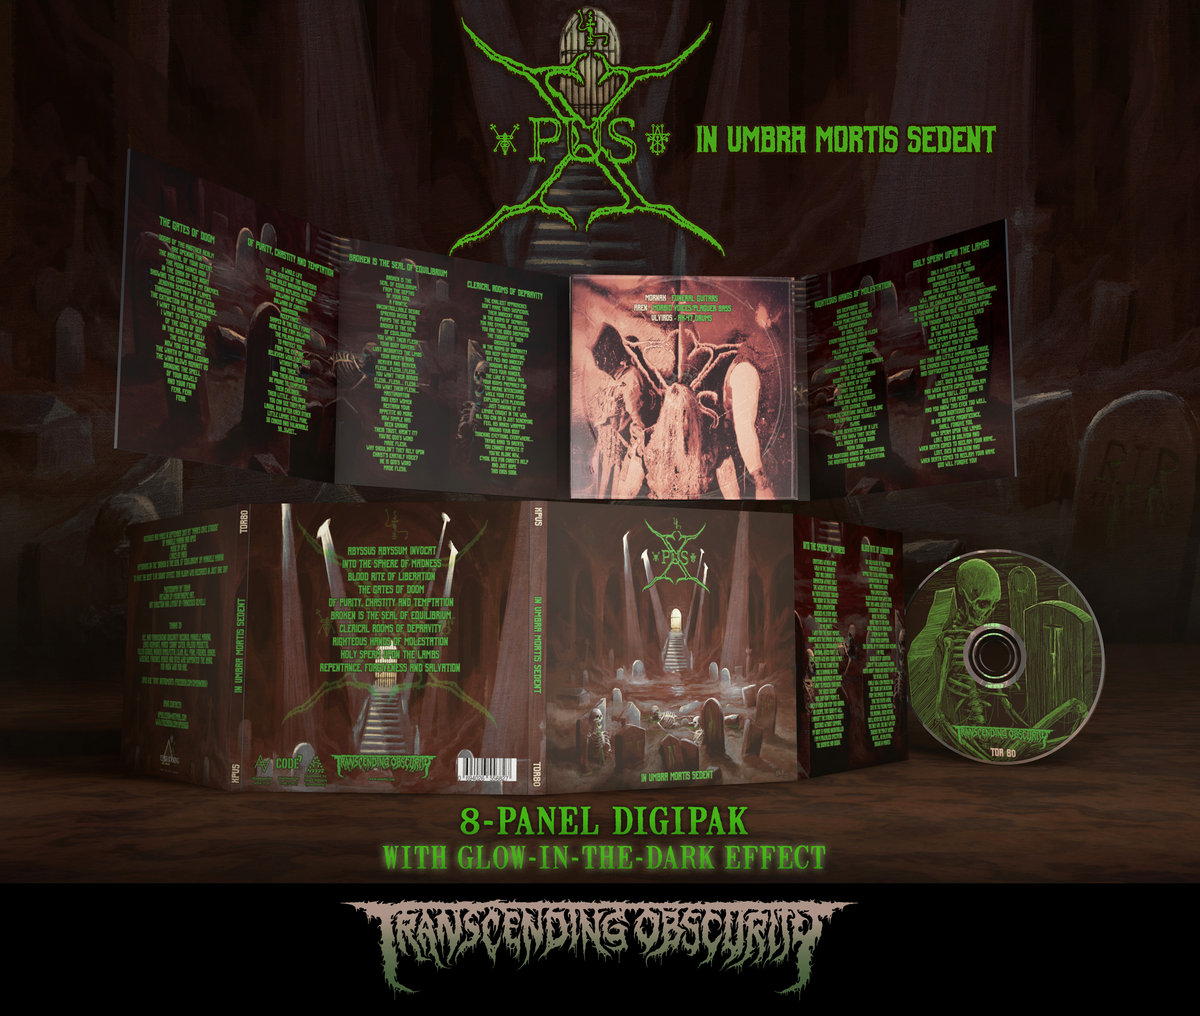 XPUS -  In Umbra Mortis Sedent (Death Metal) Glow-in-the-dark effect 8-Panel Digipak CD